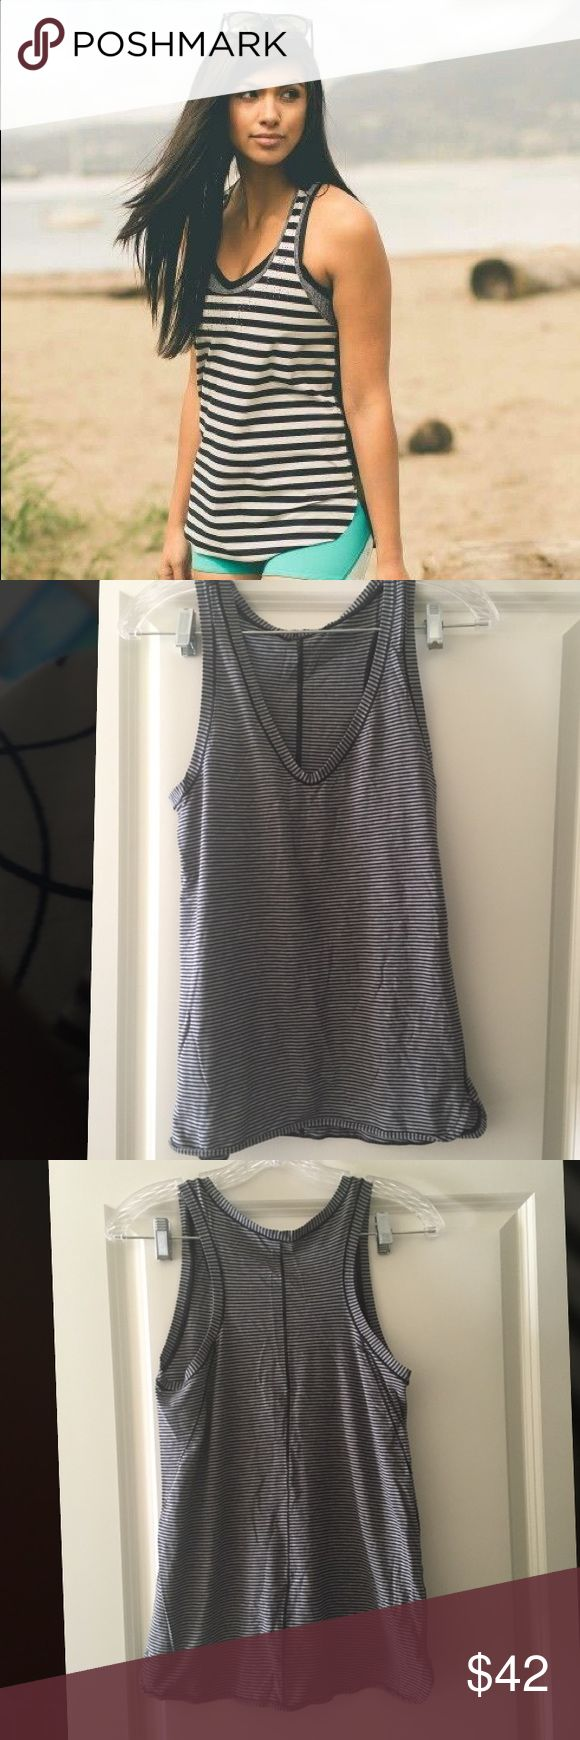 Lululemon blue and white striped tank BUNDLE WITH 2 OR MORE ITEMS FOR A 30% DISCOUNT lululemon athletica Tops Tank Tops